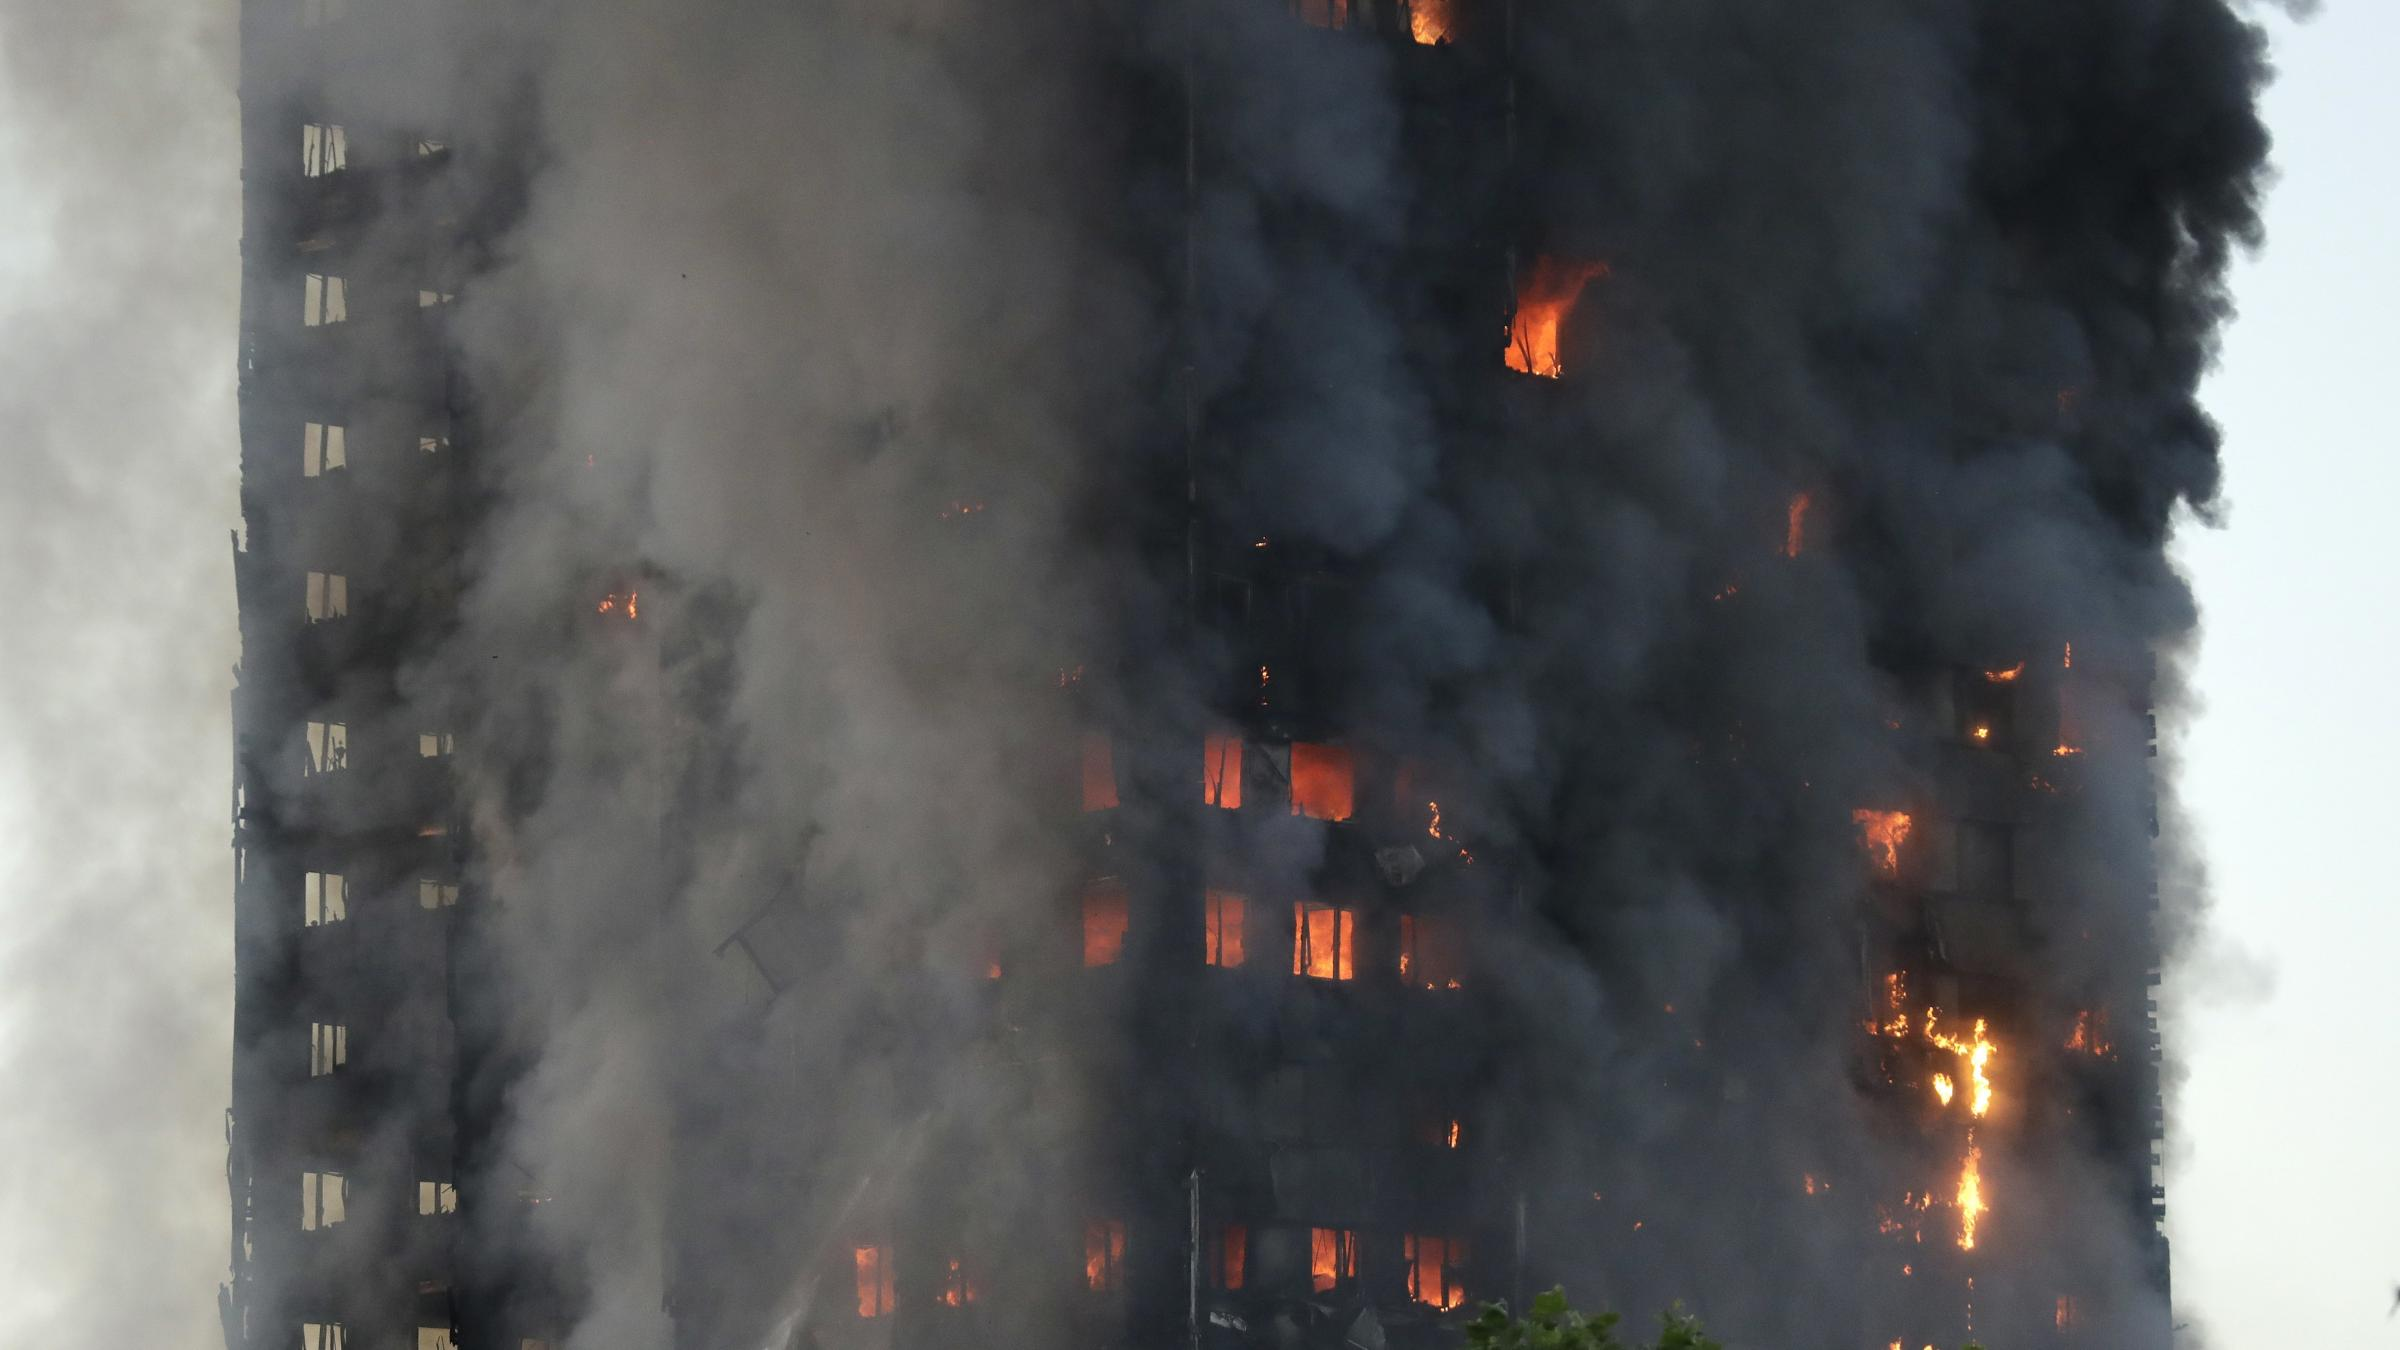 At least 6 dead in London apartment tower inferno